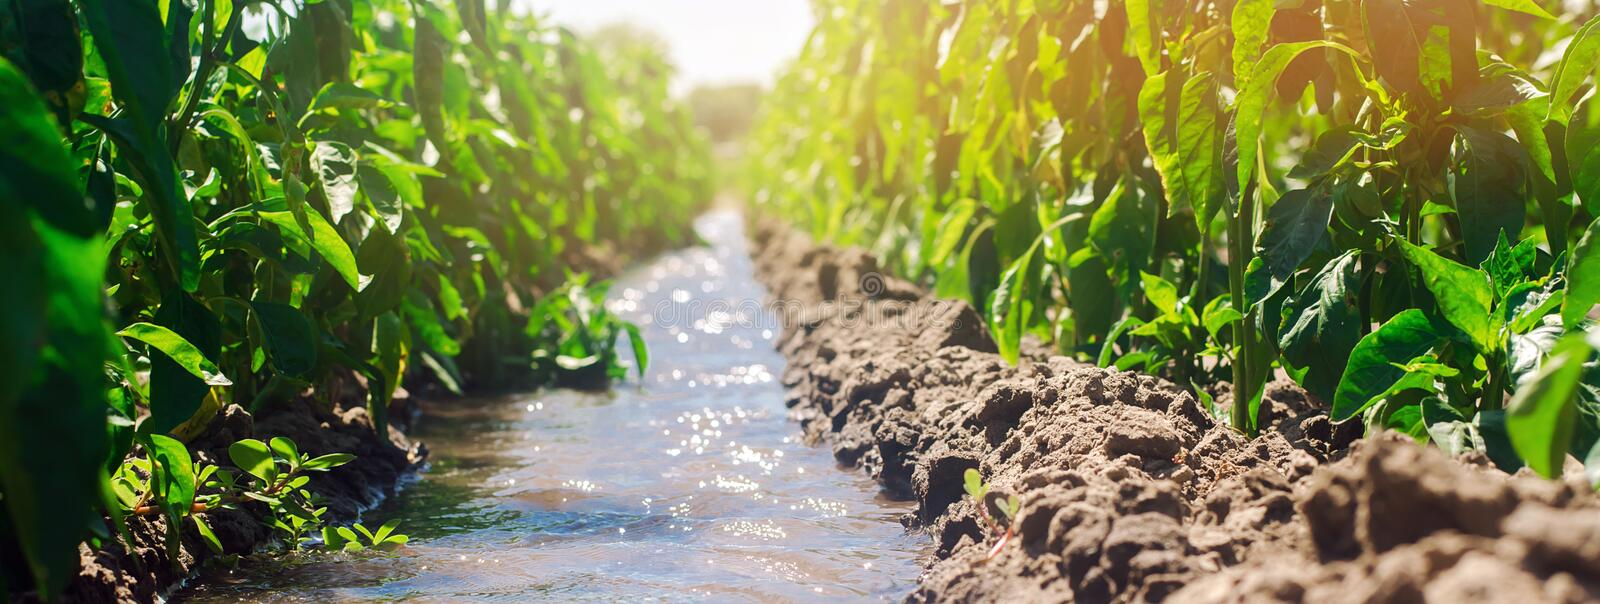 Irrigation of peppers in the field. Traditional natural watering. Eco-friendly products. Agriculture and farmland. Crops. Ukraine royalty free stock images